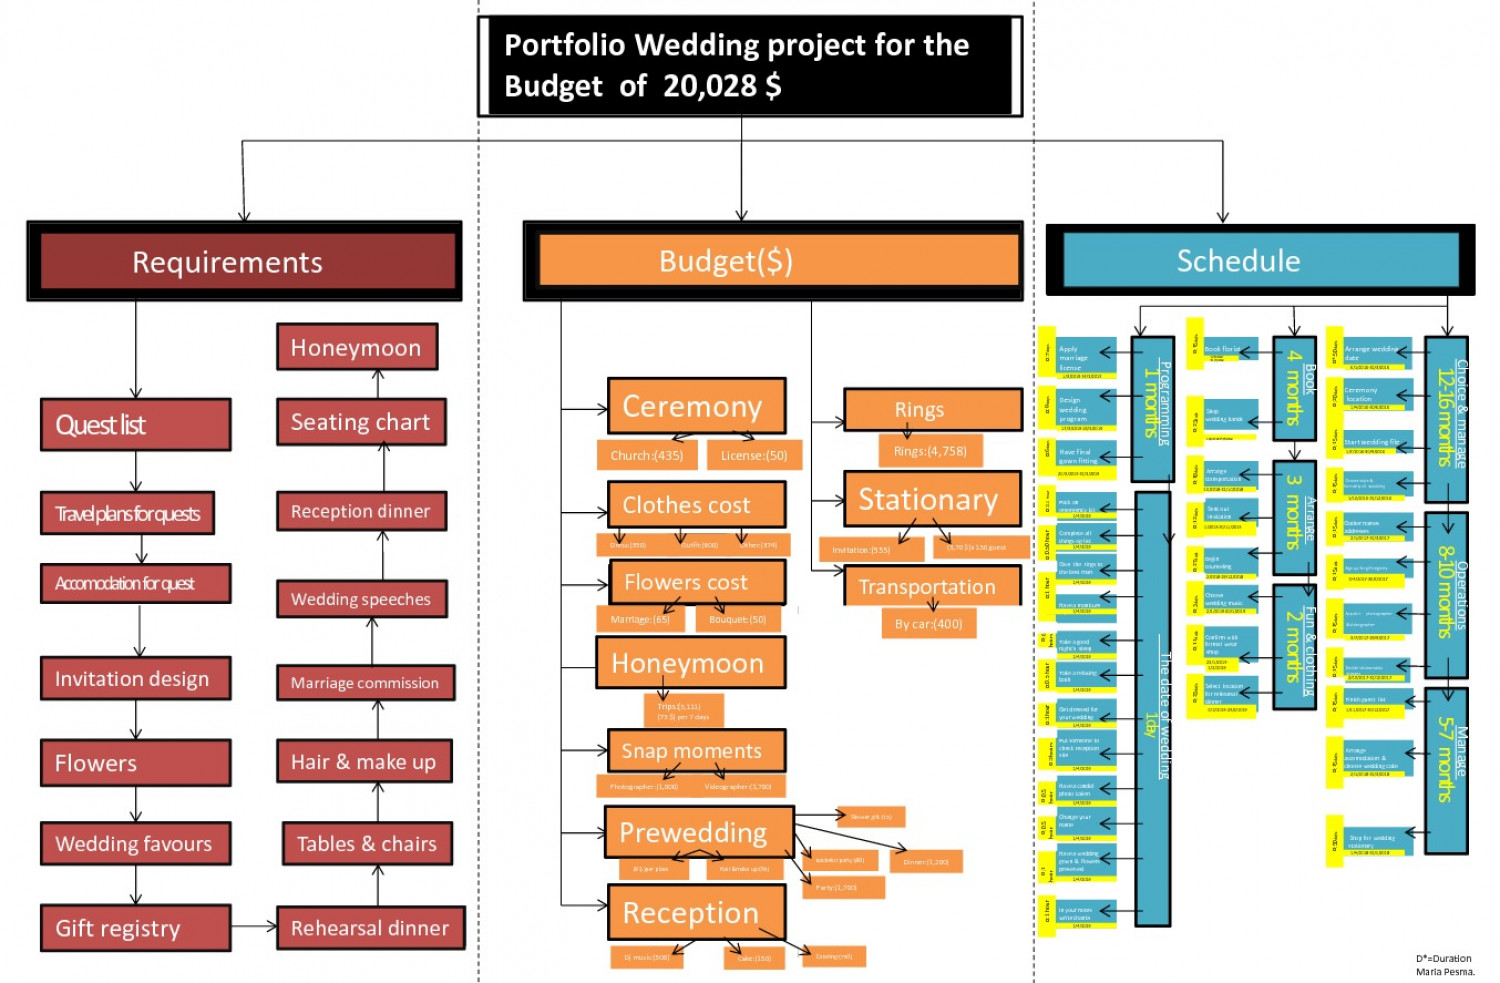 Portfolio Wedding project for the Budget of 20,028 $ Infographic